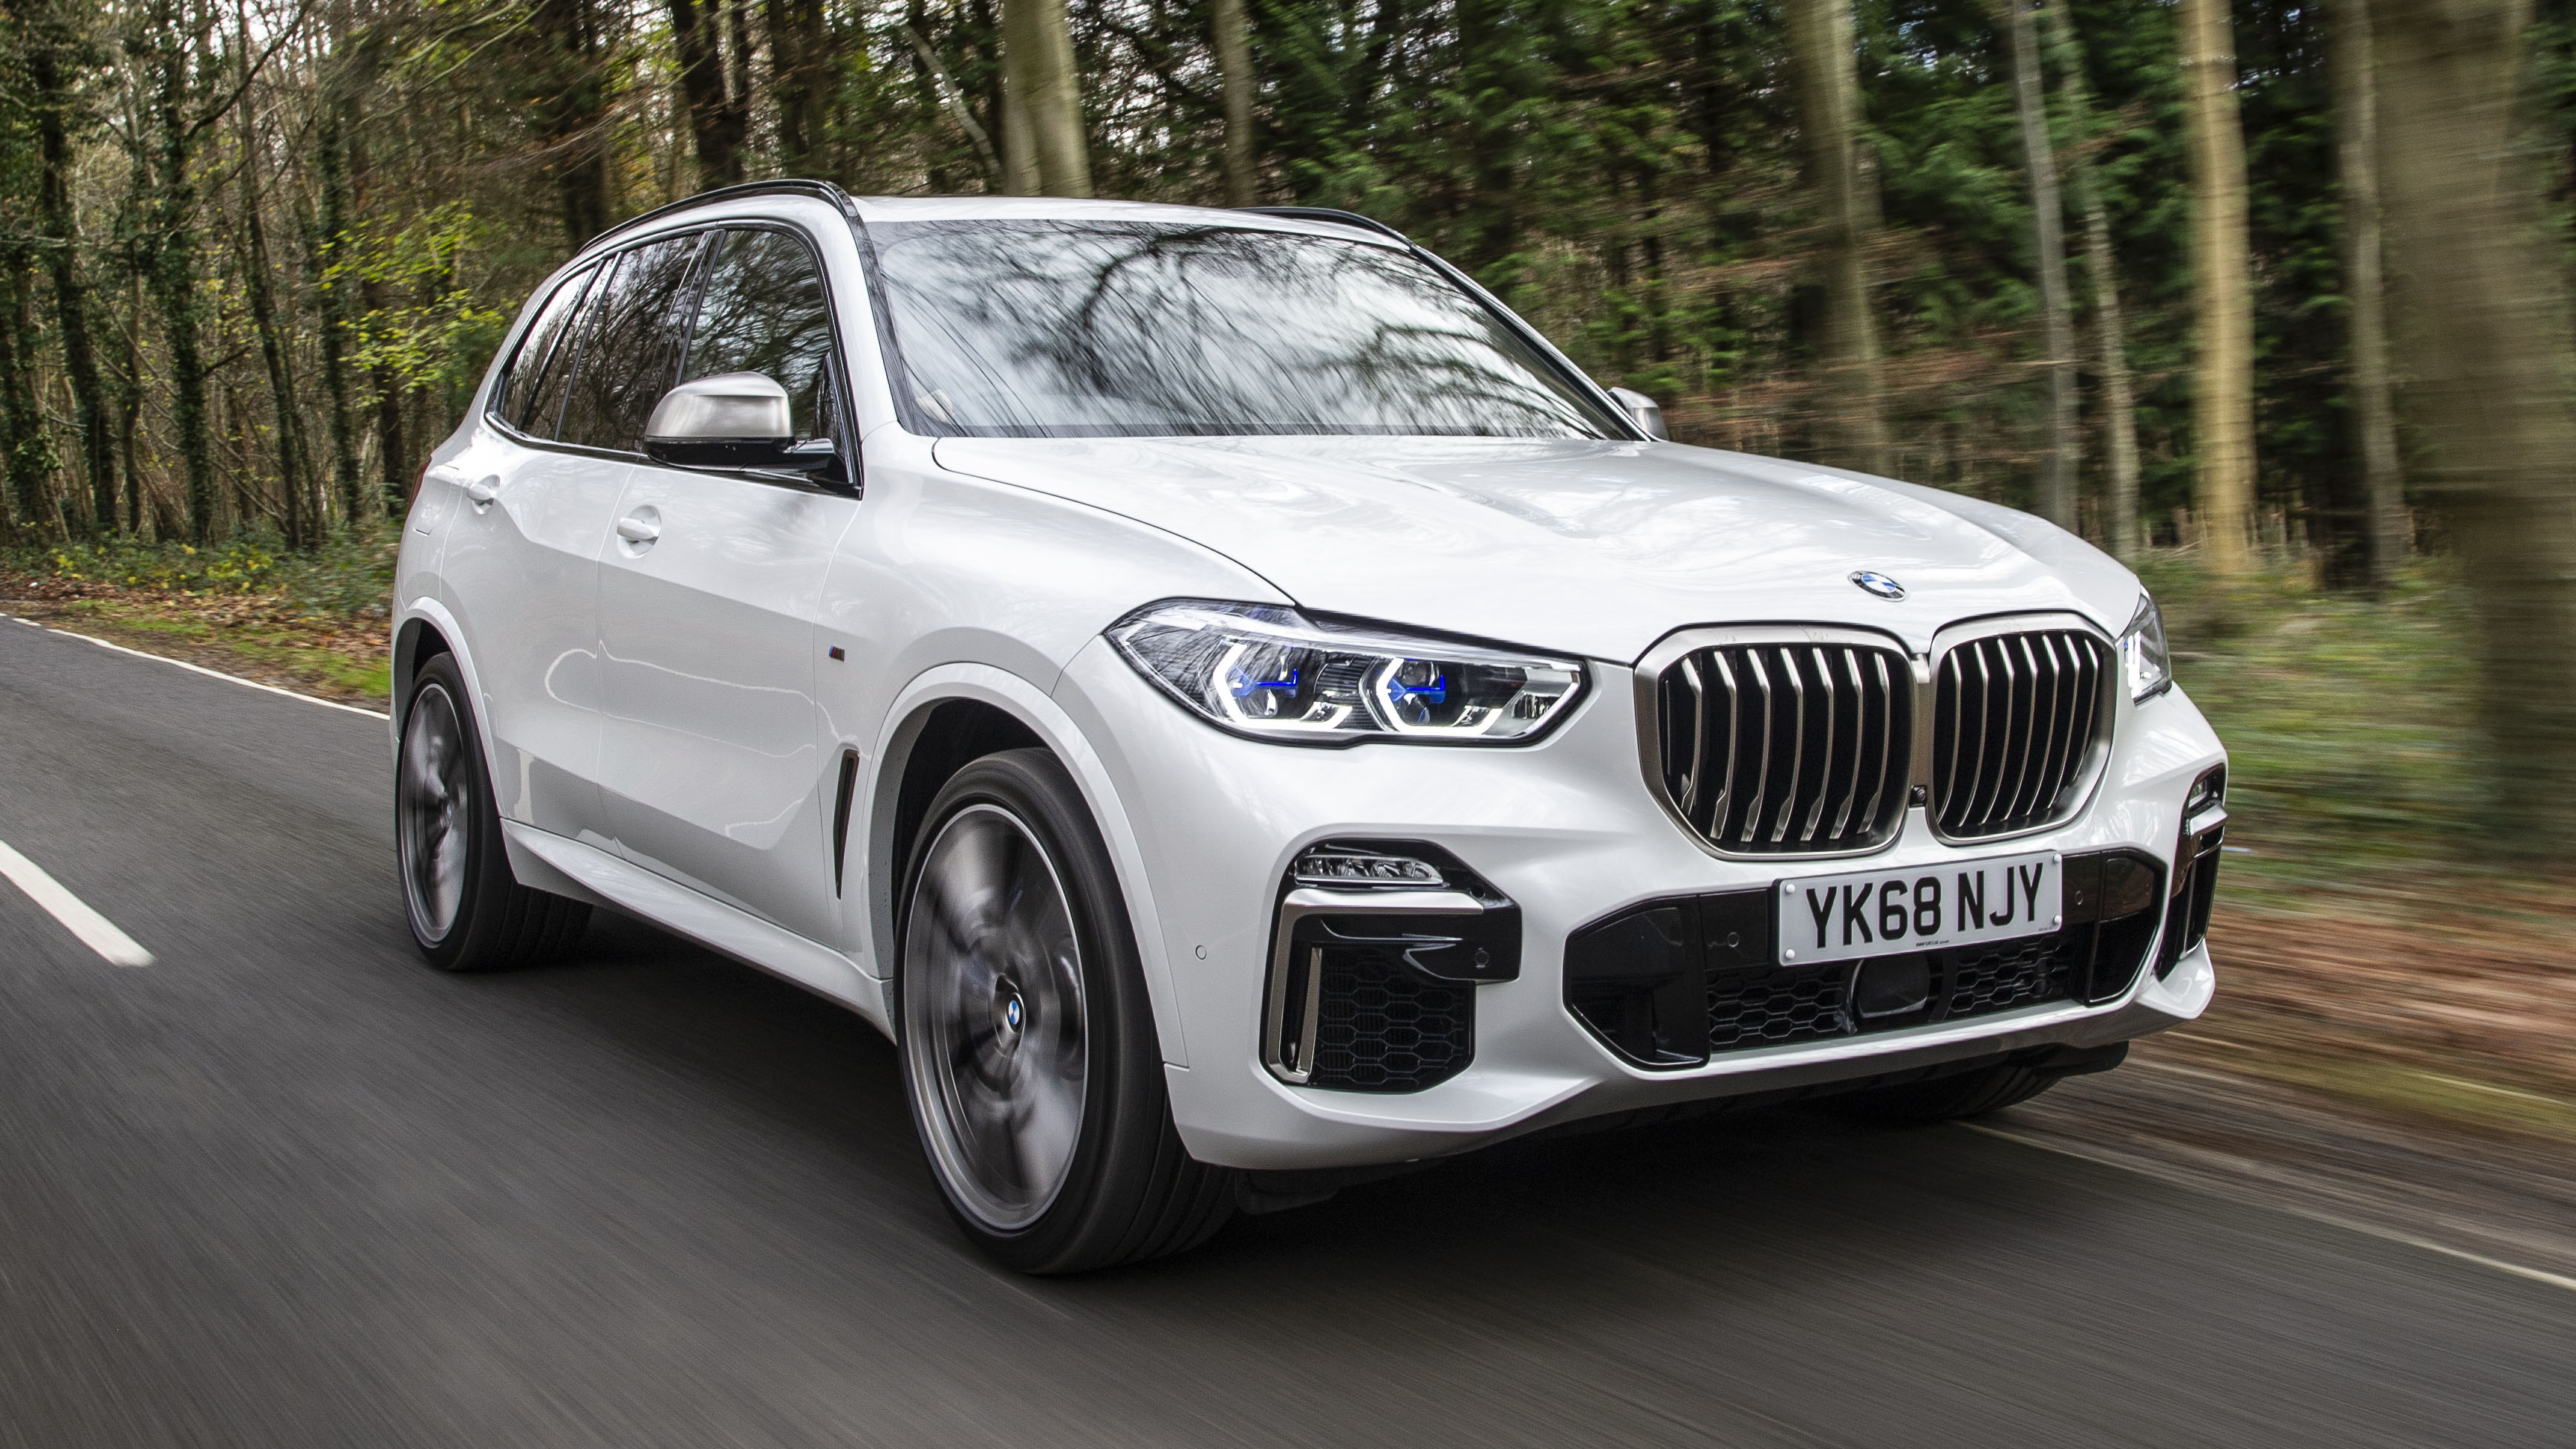 BMW X5 M50d review: do you need 395bhp in a diesel SUV